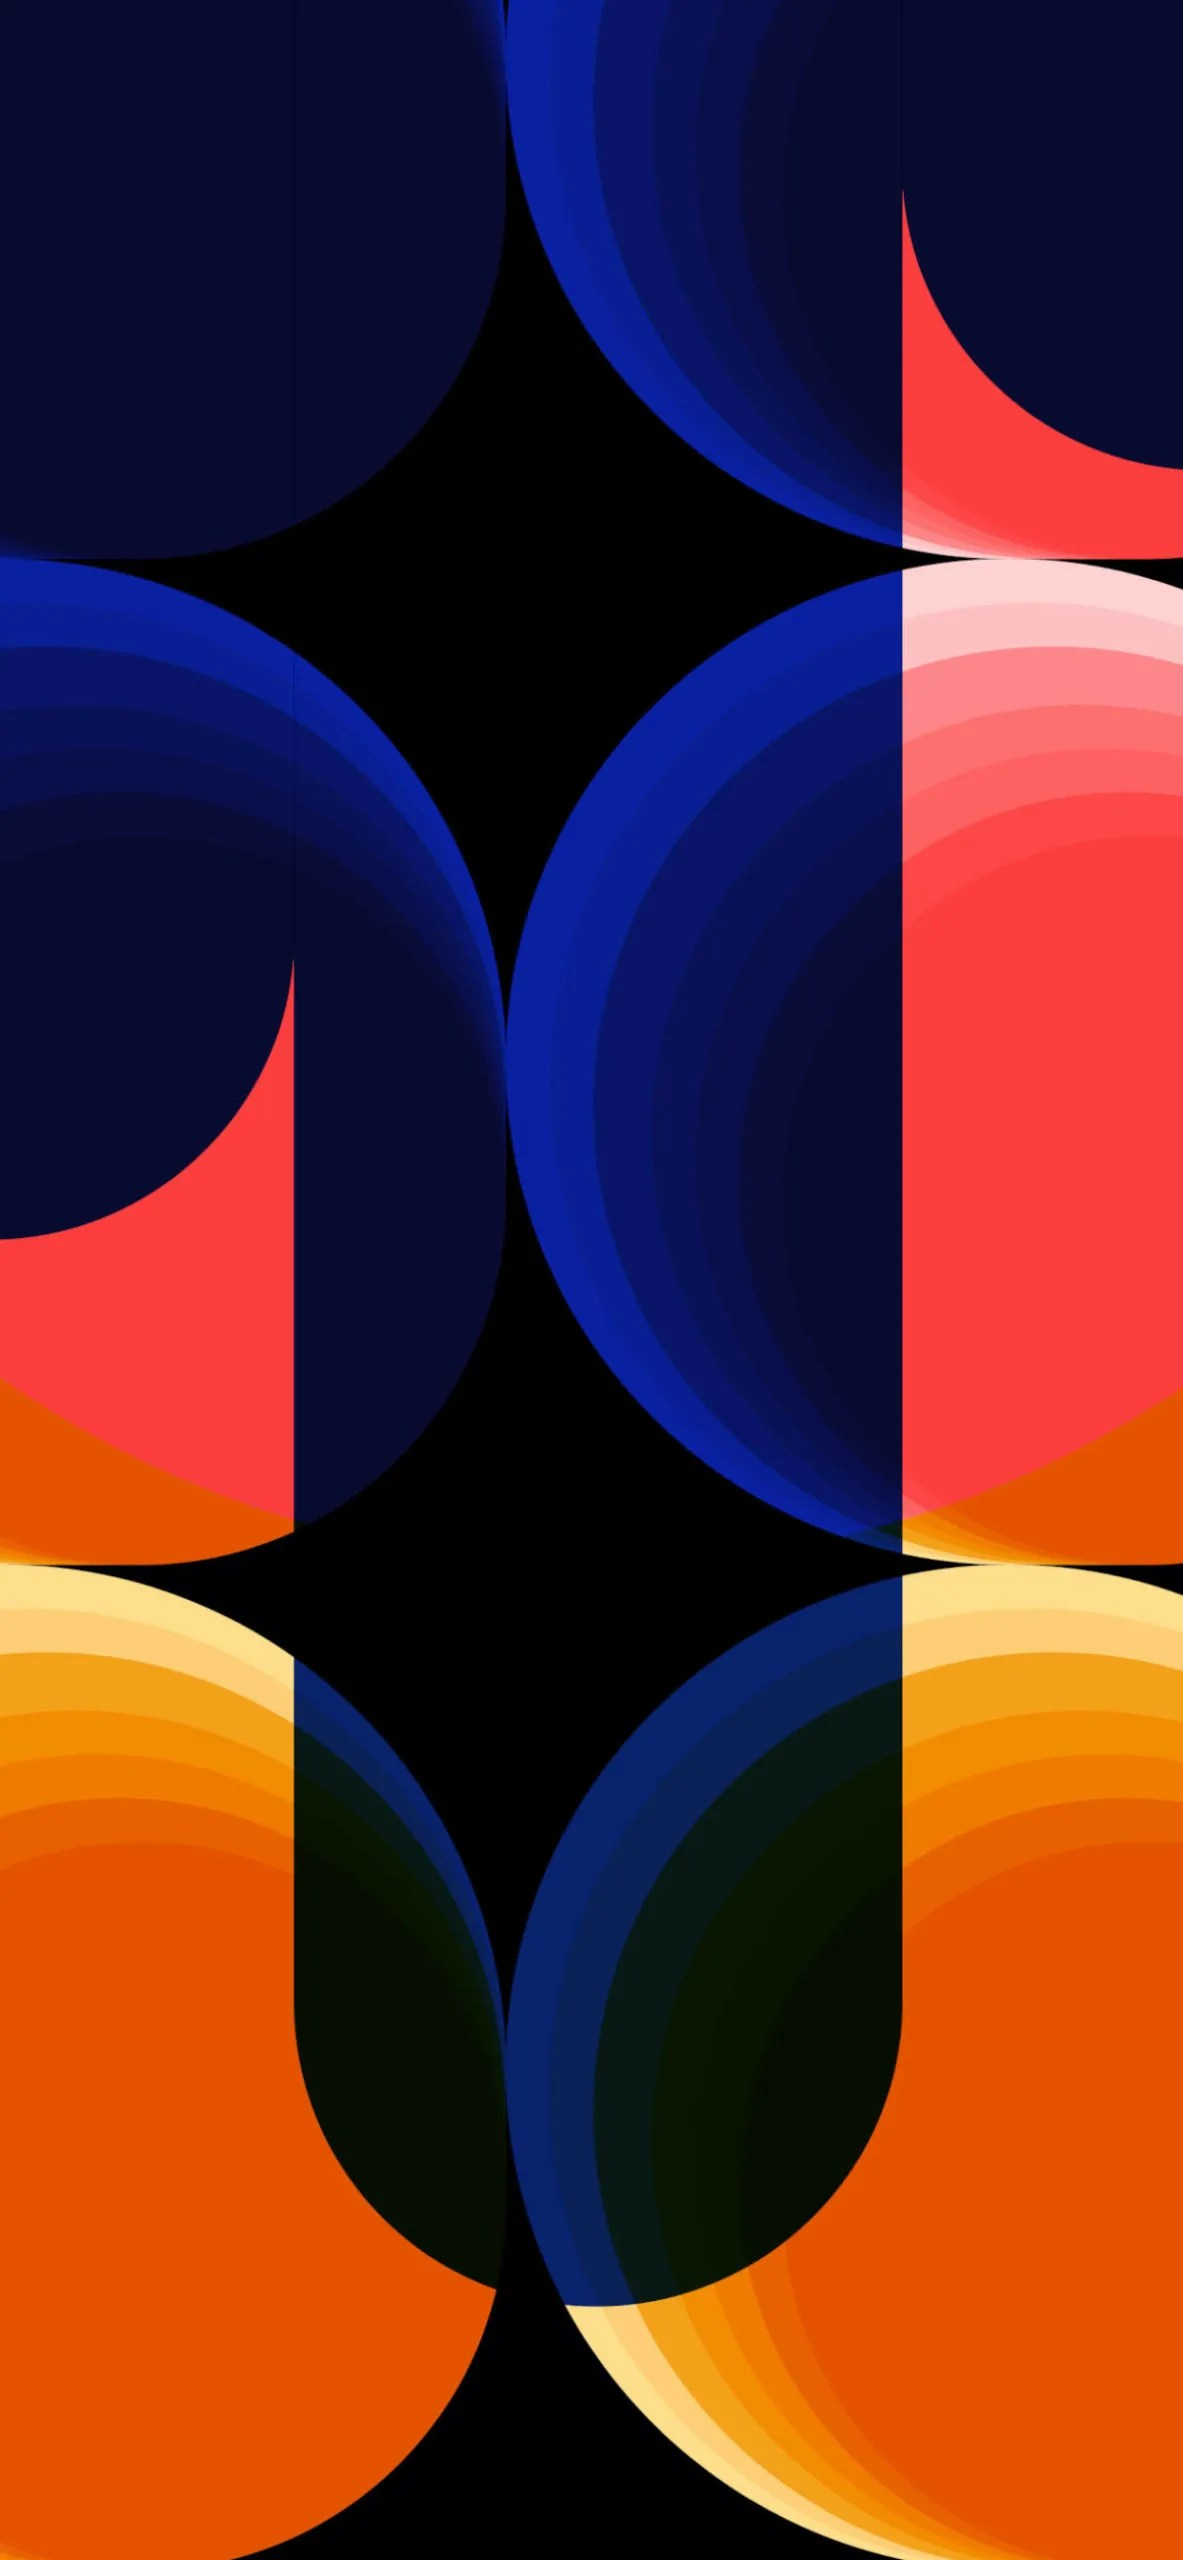 iPhone wallpapers pattern blue orange scaled Patterns